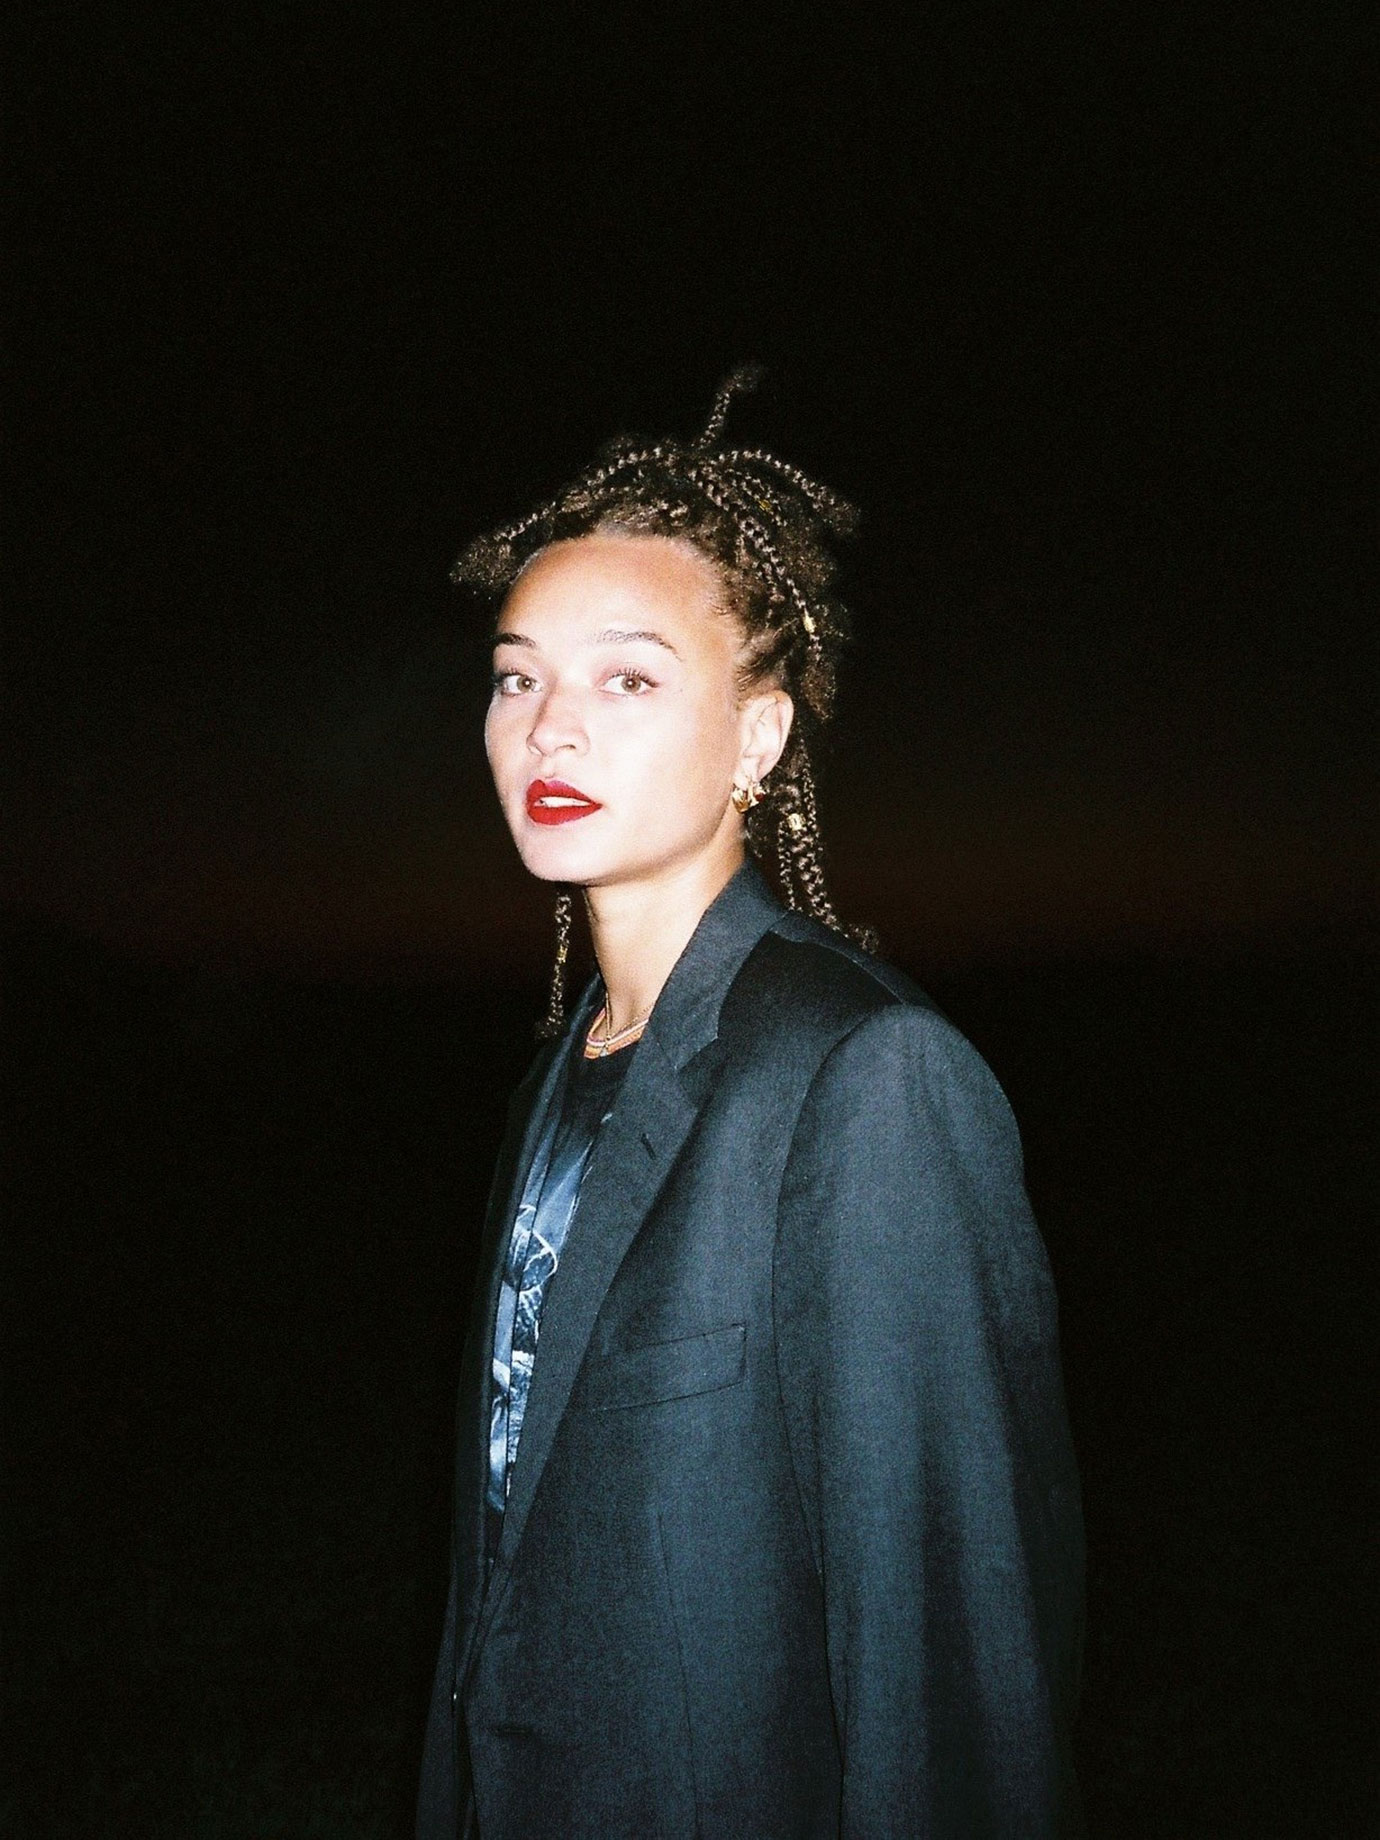 A woman wearing a suit jacket at night.